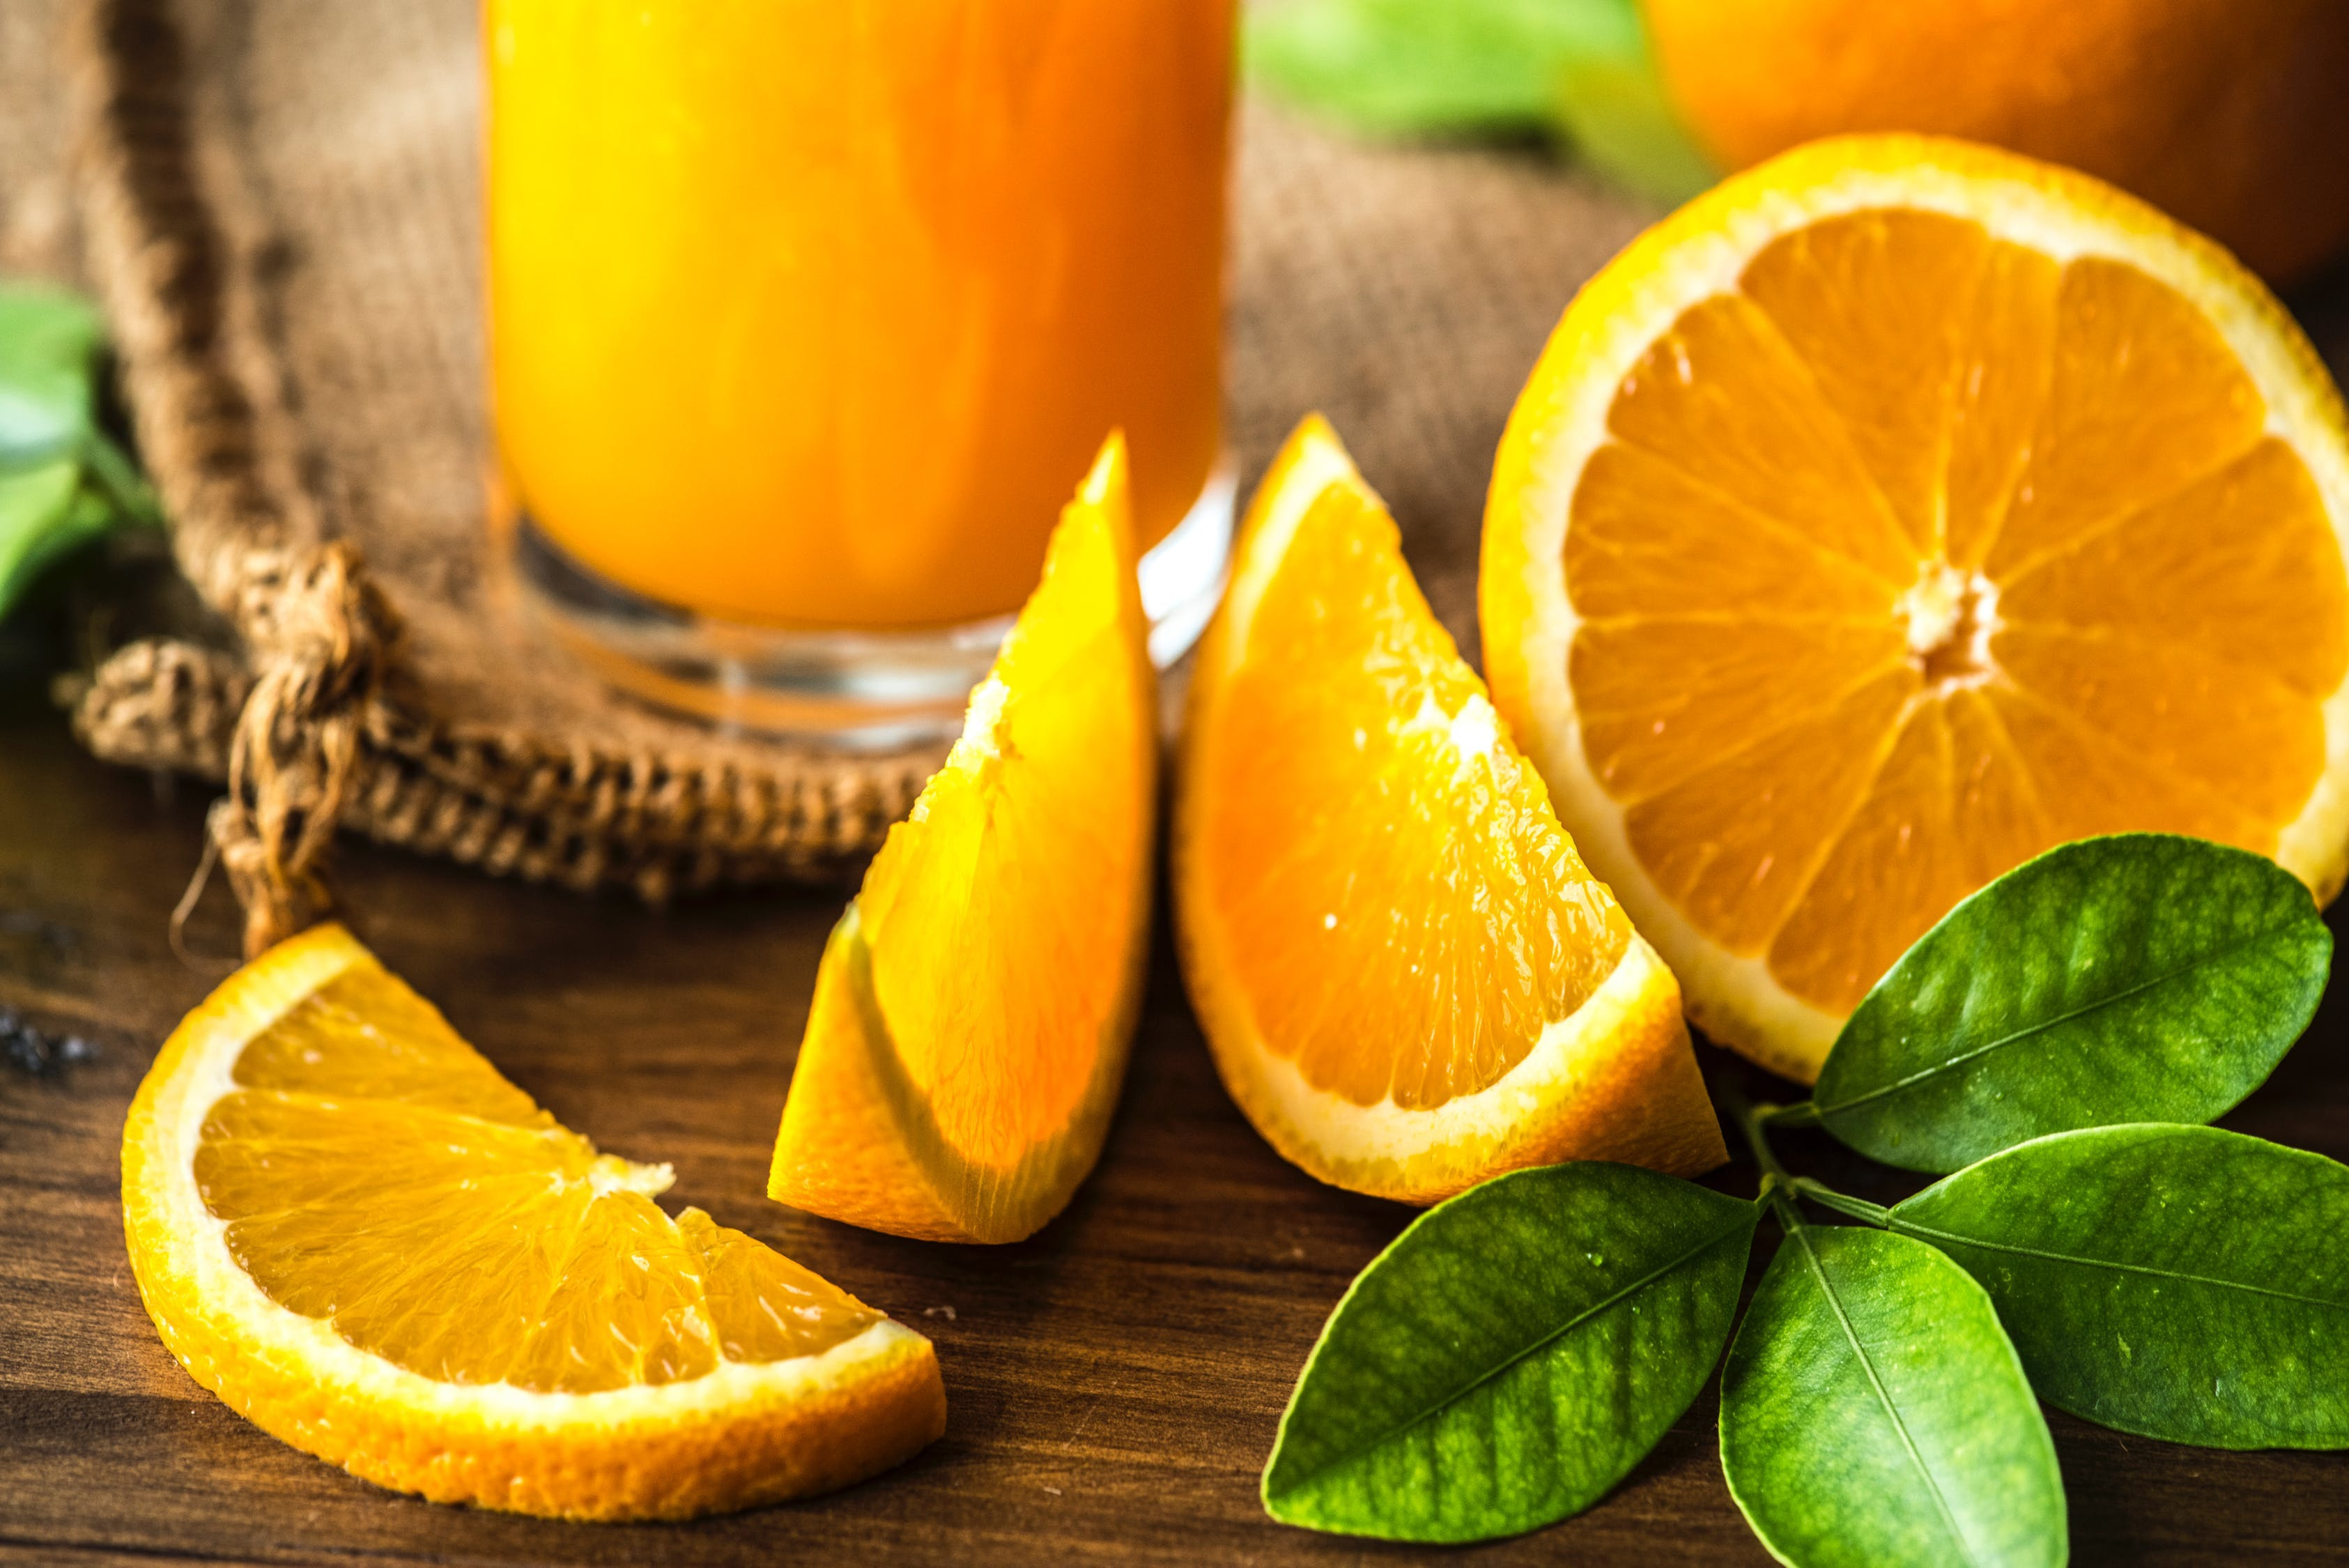 Vitamin C helps fight off free radicals after brain injury